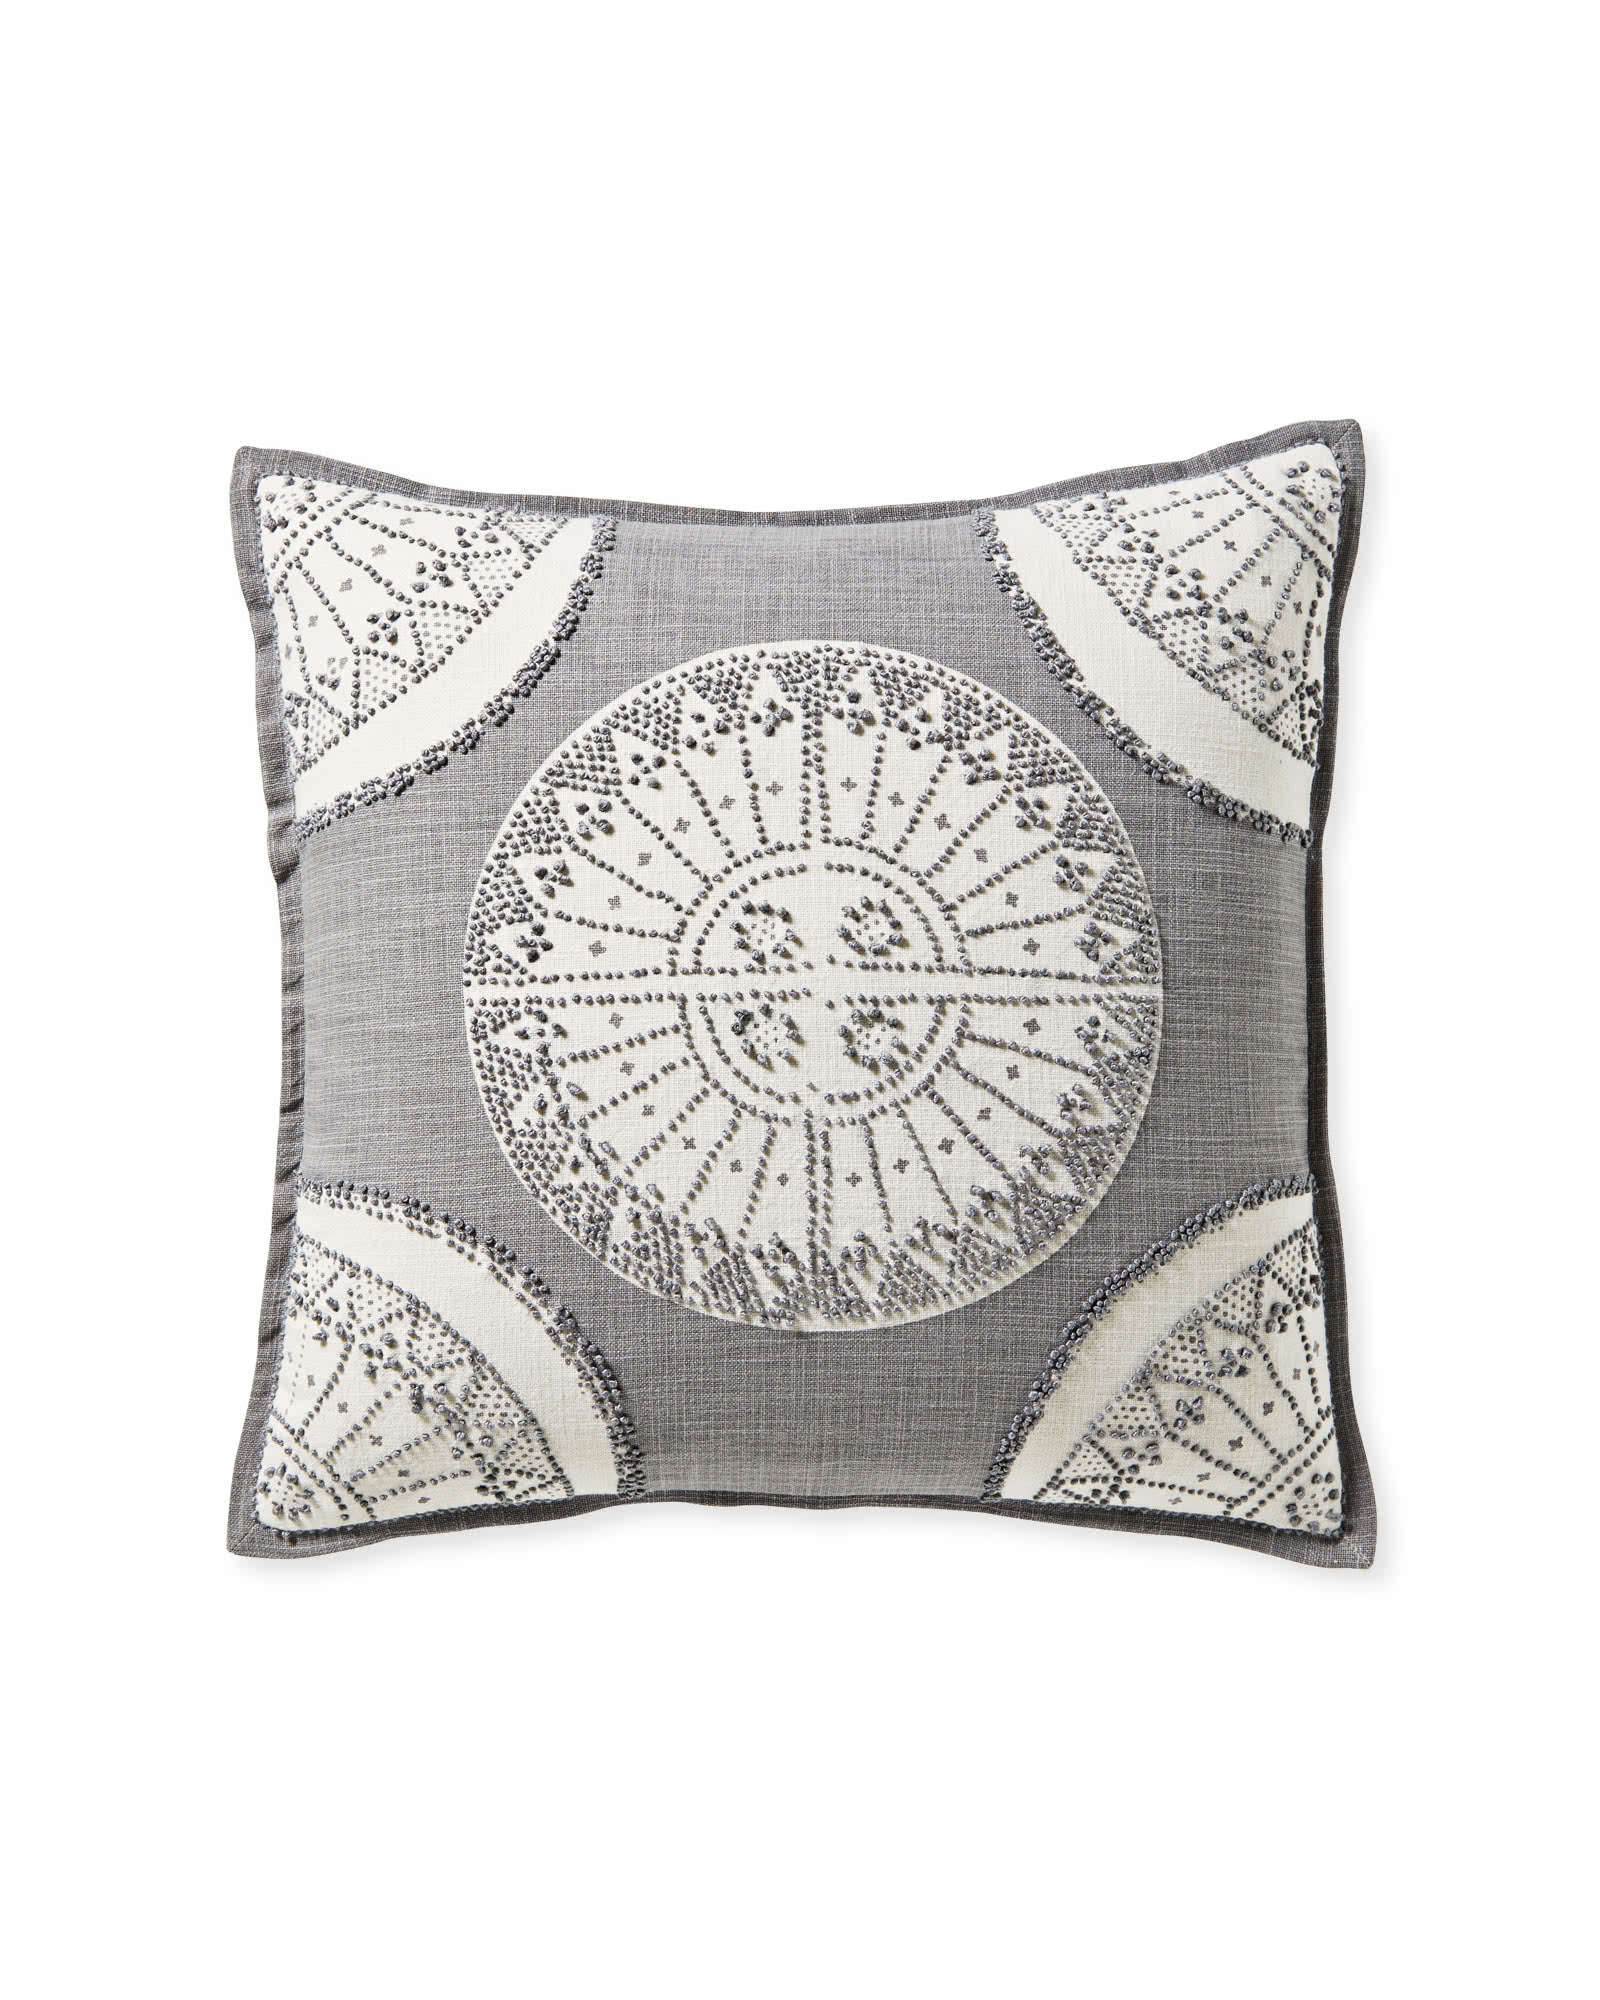 Lucia Pillow Cover, Pewter